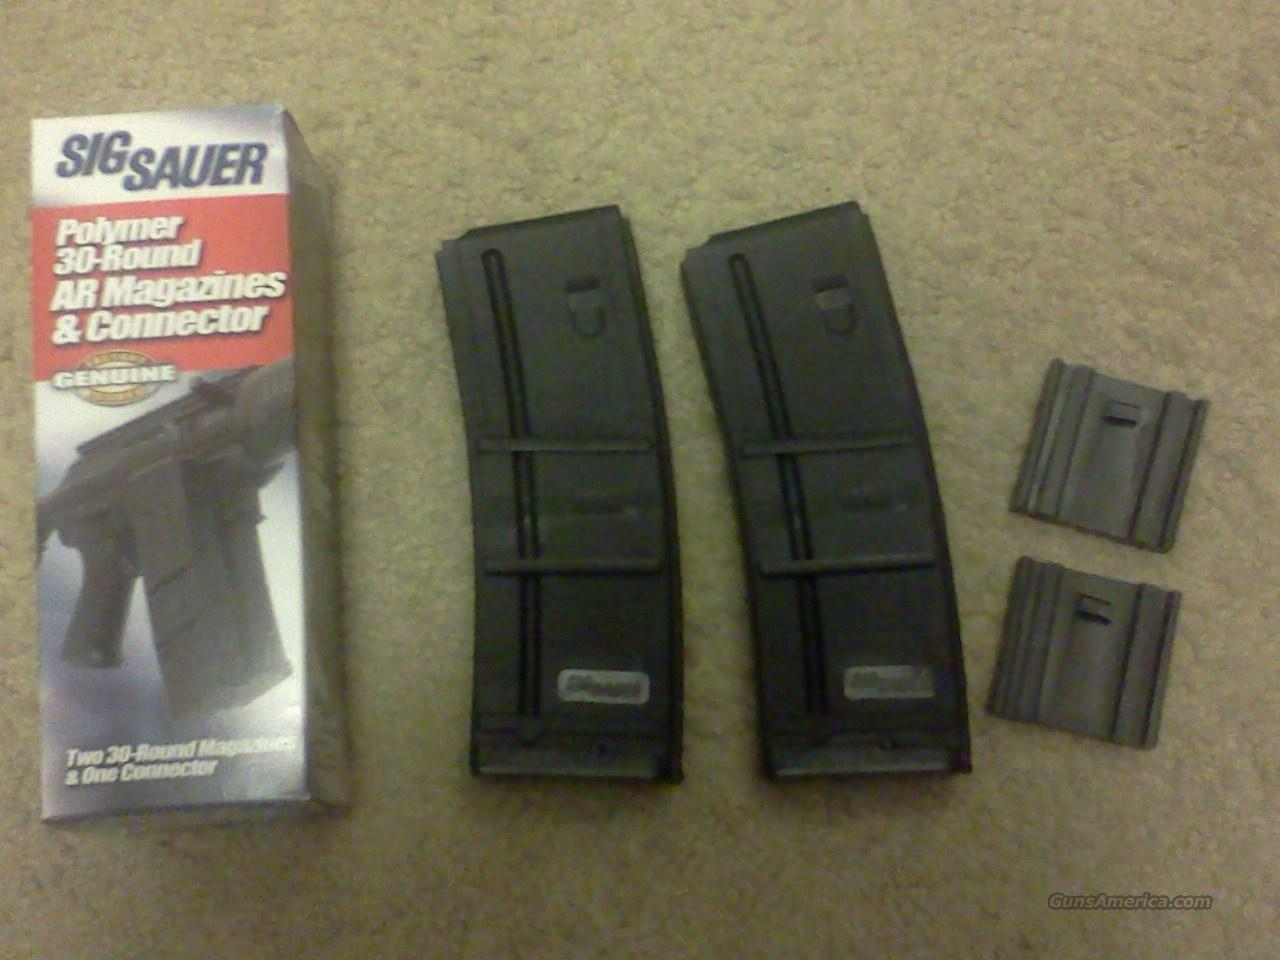 SIG SAUER 30 ROUND .556 MAGAZINES WITH CONNECTOR  Non-Guns > Magazines & Clips > Rifle Magazines > AR-15 Type